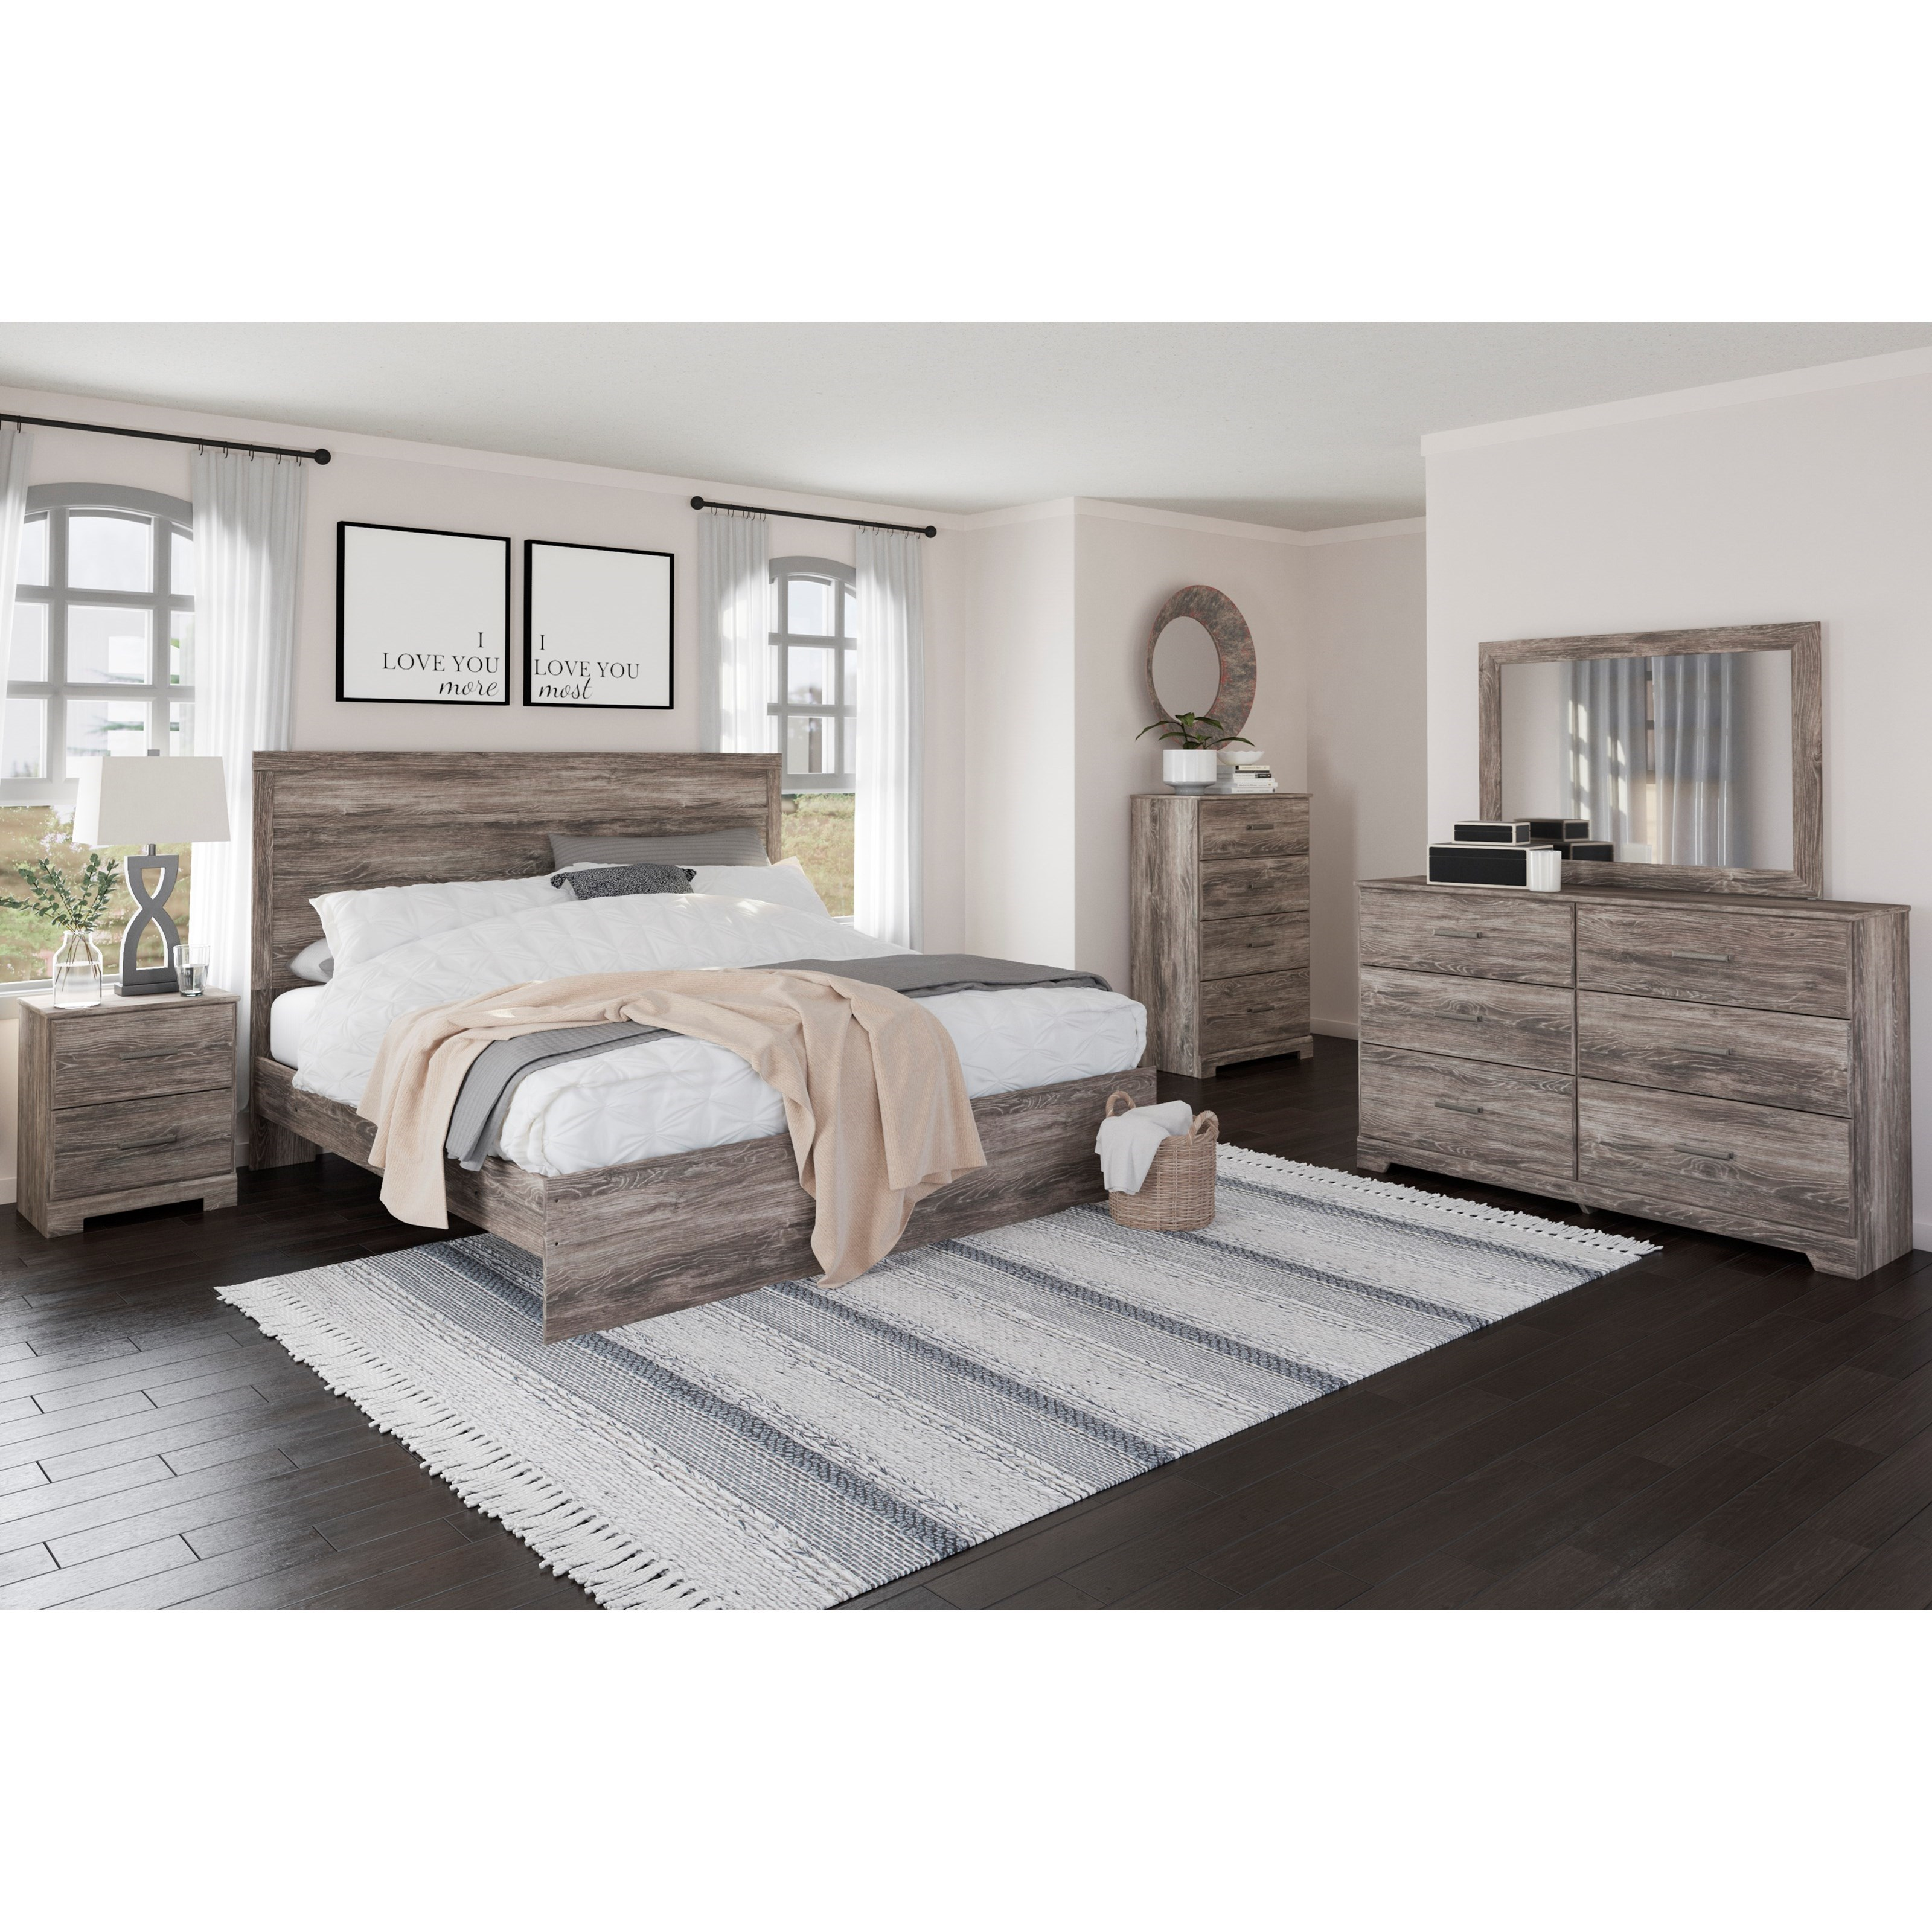 Ralinski King Bedroom Group by Signature Design by Ashley at Northeast Factory Direct